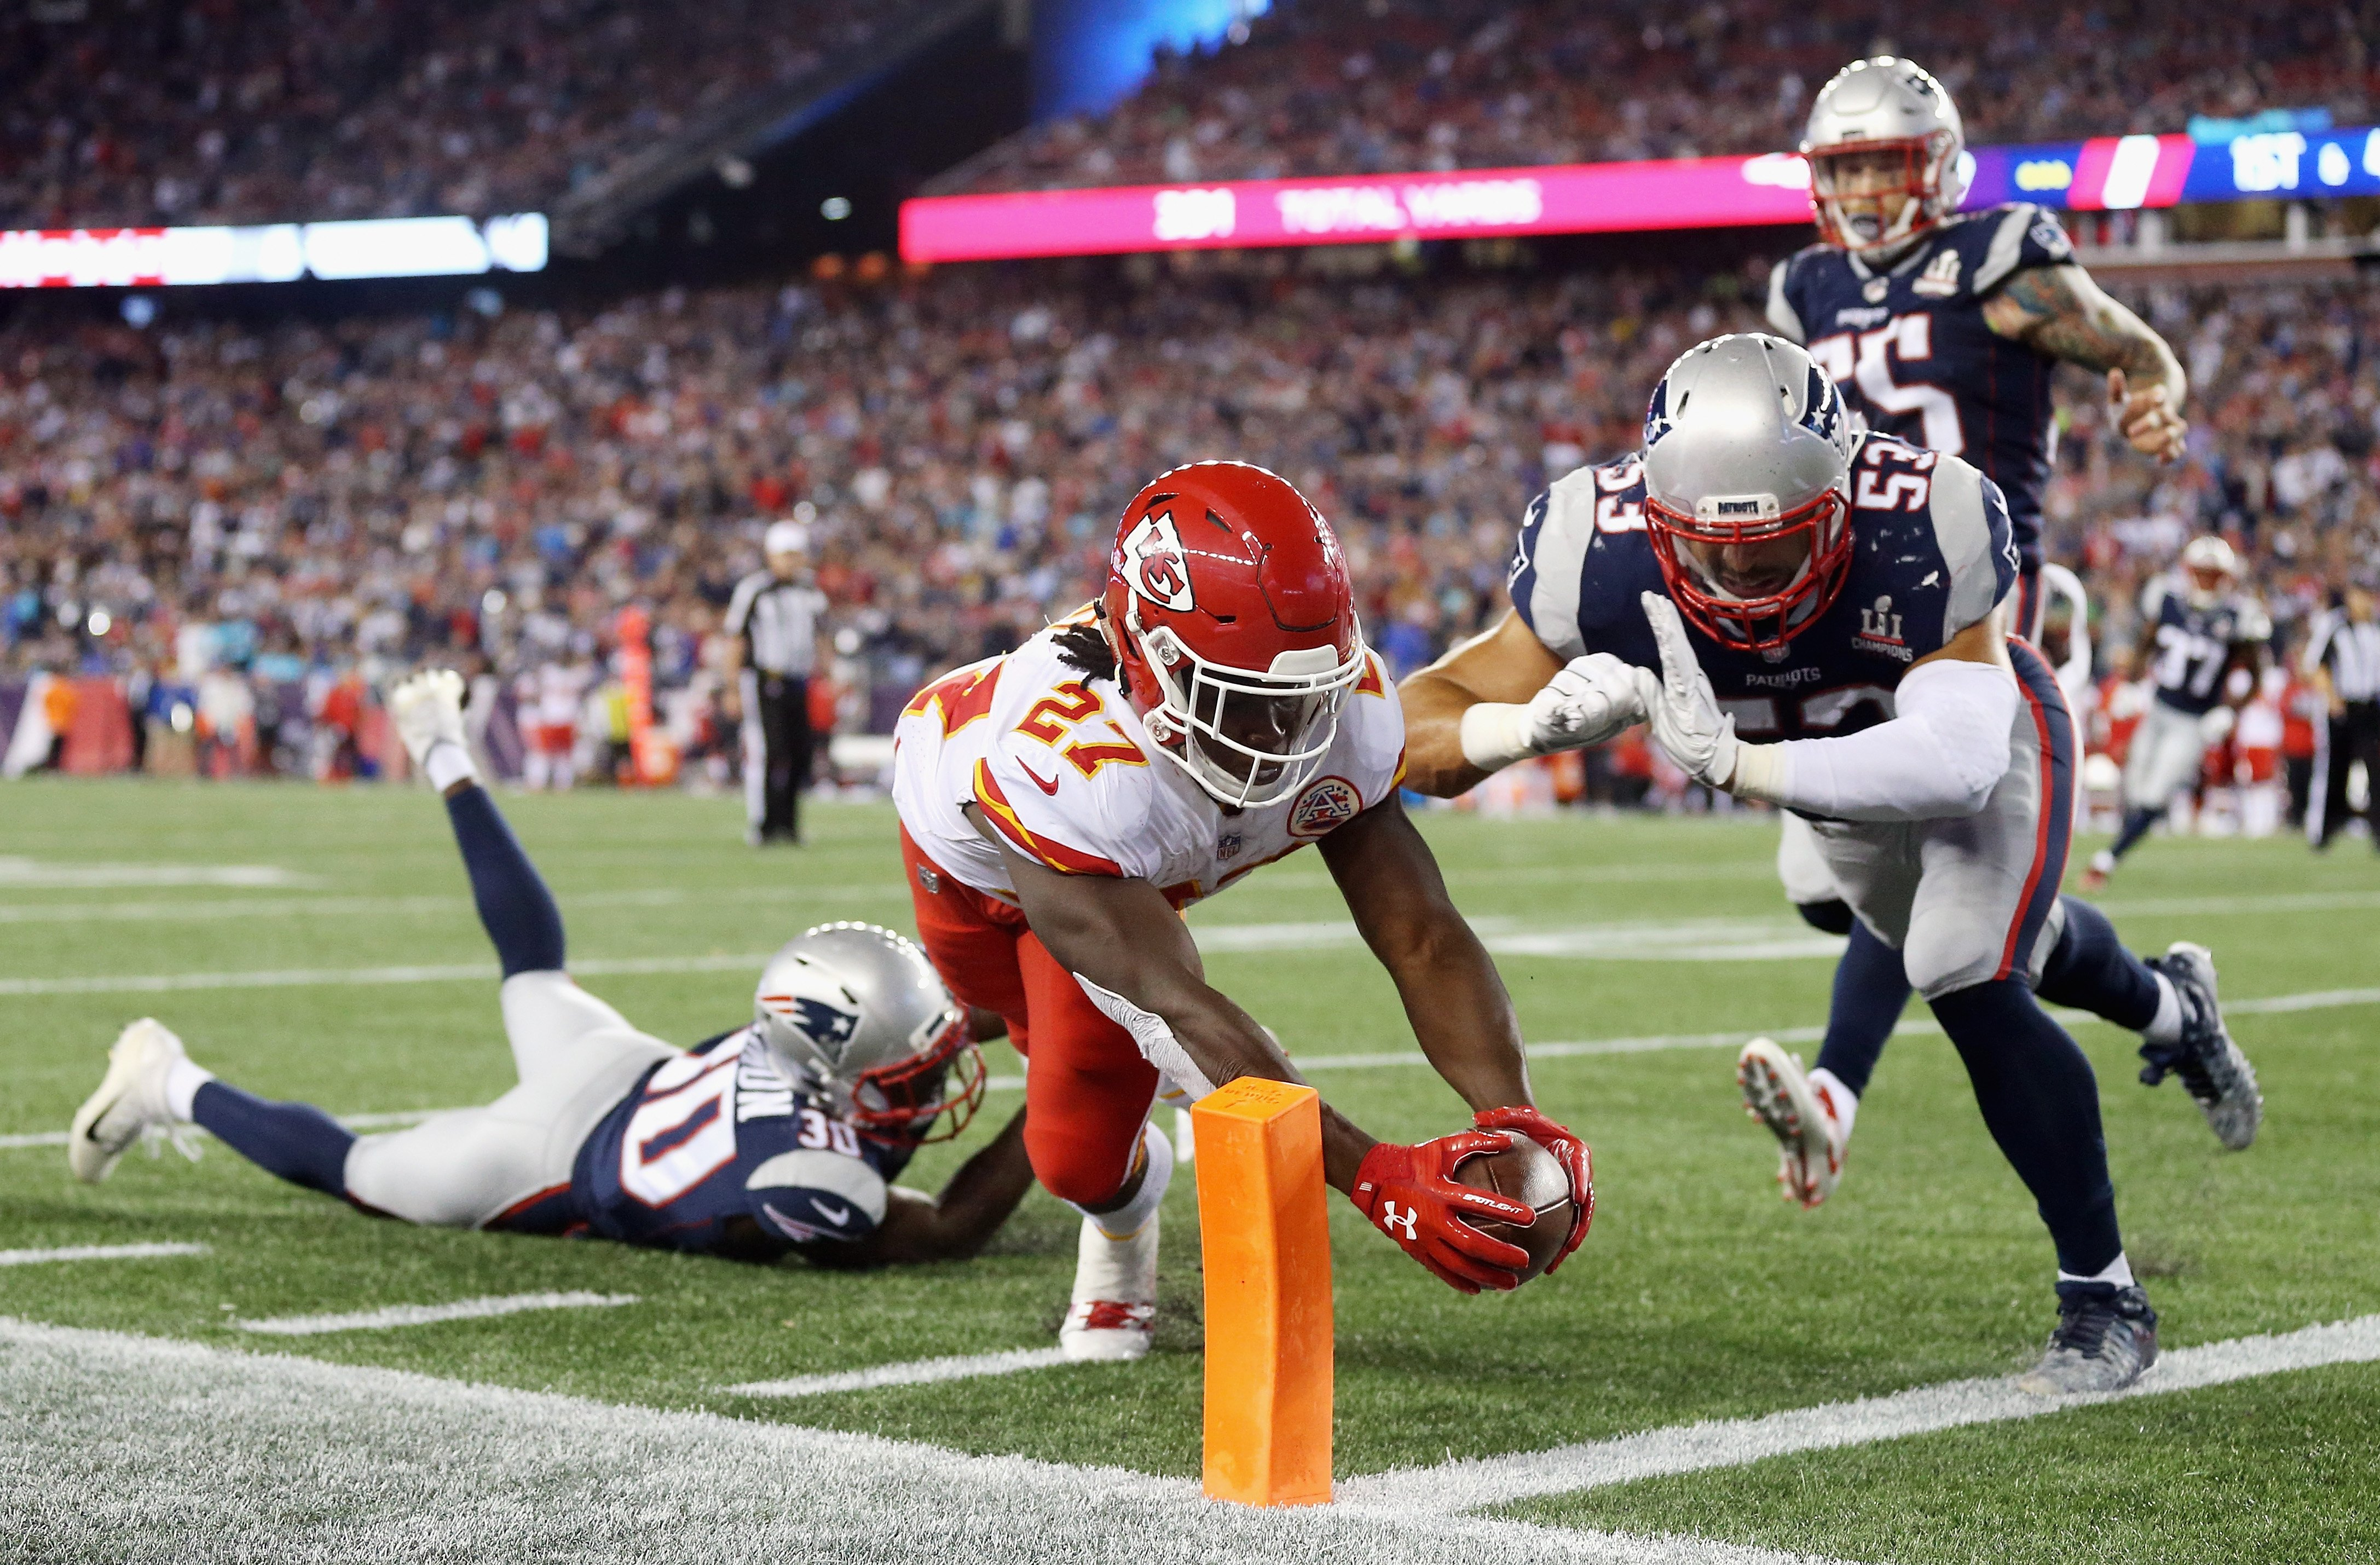 FOXBORO, MA - SEPTEMBER 07: Kareem Hunt #27 of the Kansas City Chiefs dives for the pylon to score a 4-yard rushing touchdown during the fourth quarter against the New England Patriots at Gillette Stadium on September 7, 2017 in Foxboro, Massachusetts. (Photo by Maddie Meyer/Getty Images)